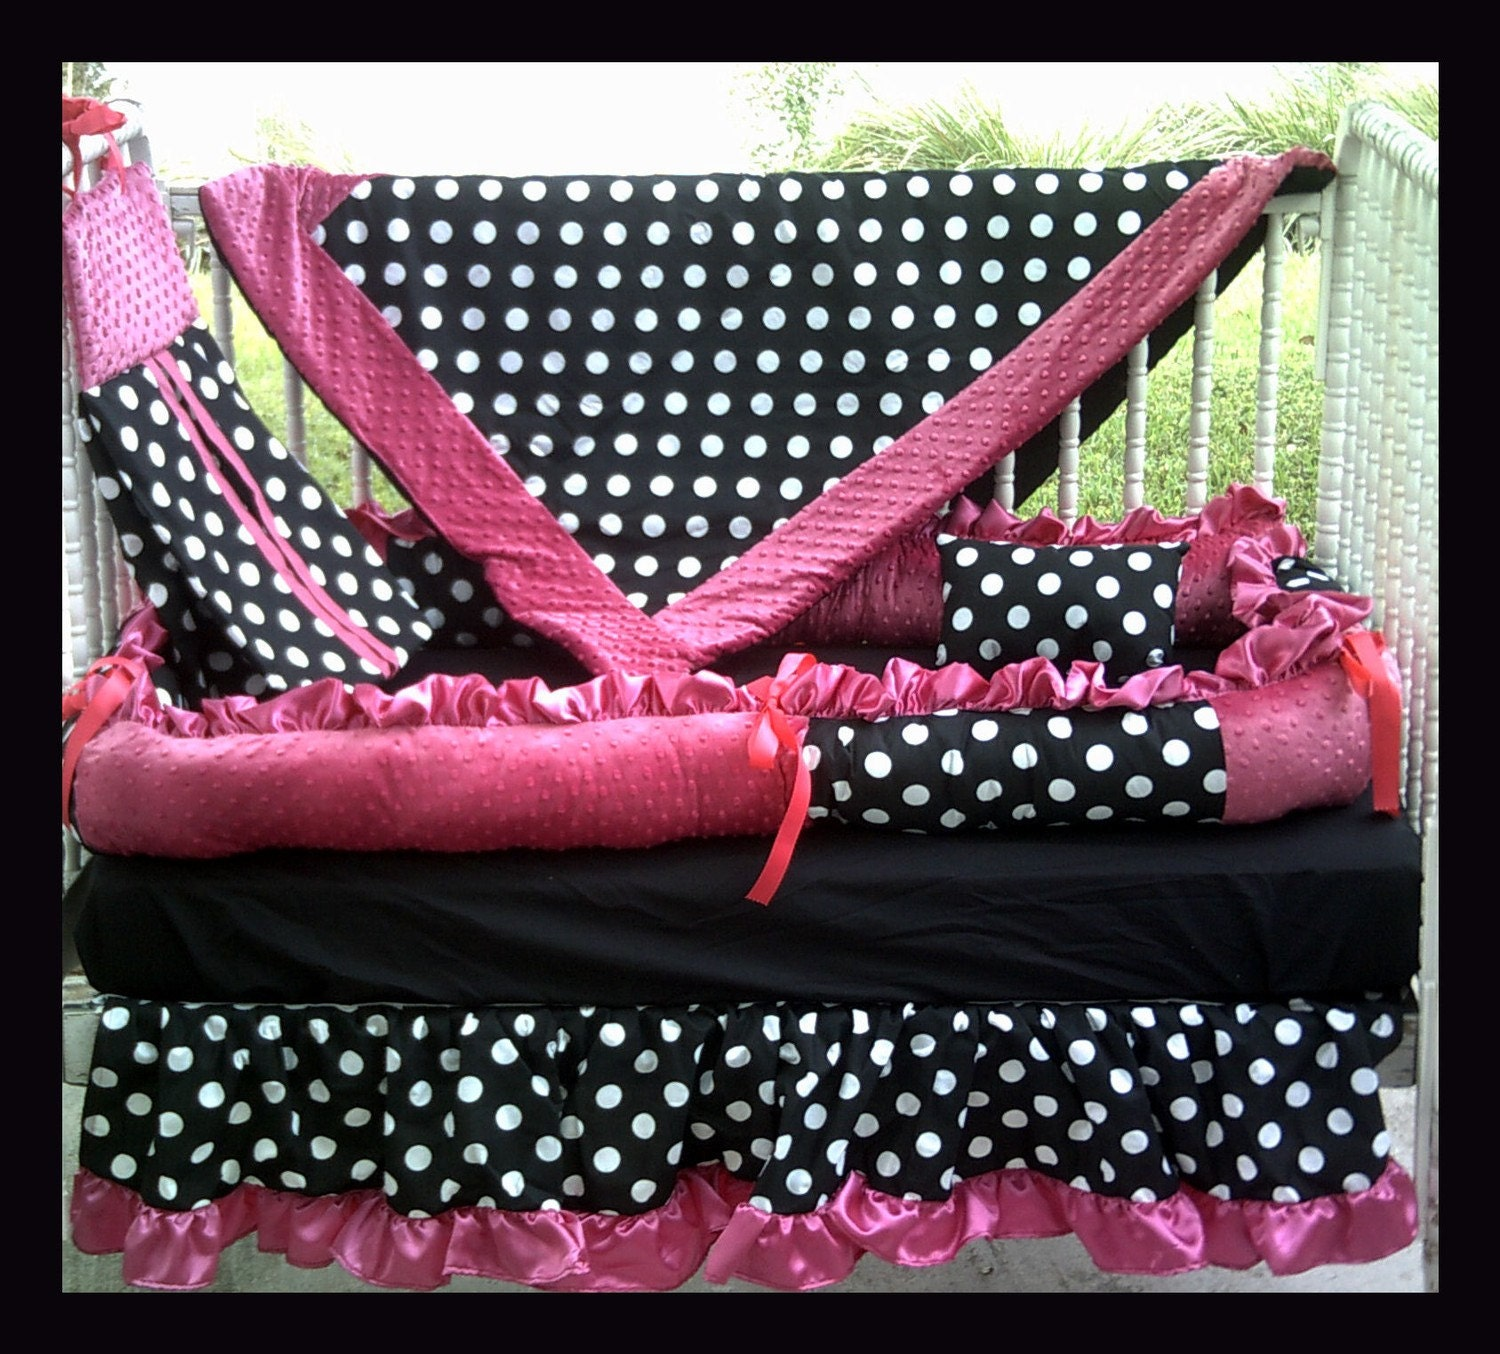 Polka dot bed spreads -  Bedding Black And White Polka Dot And Hot Pink Fabrics Zoom